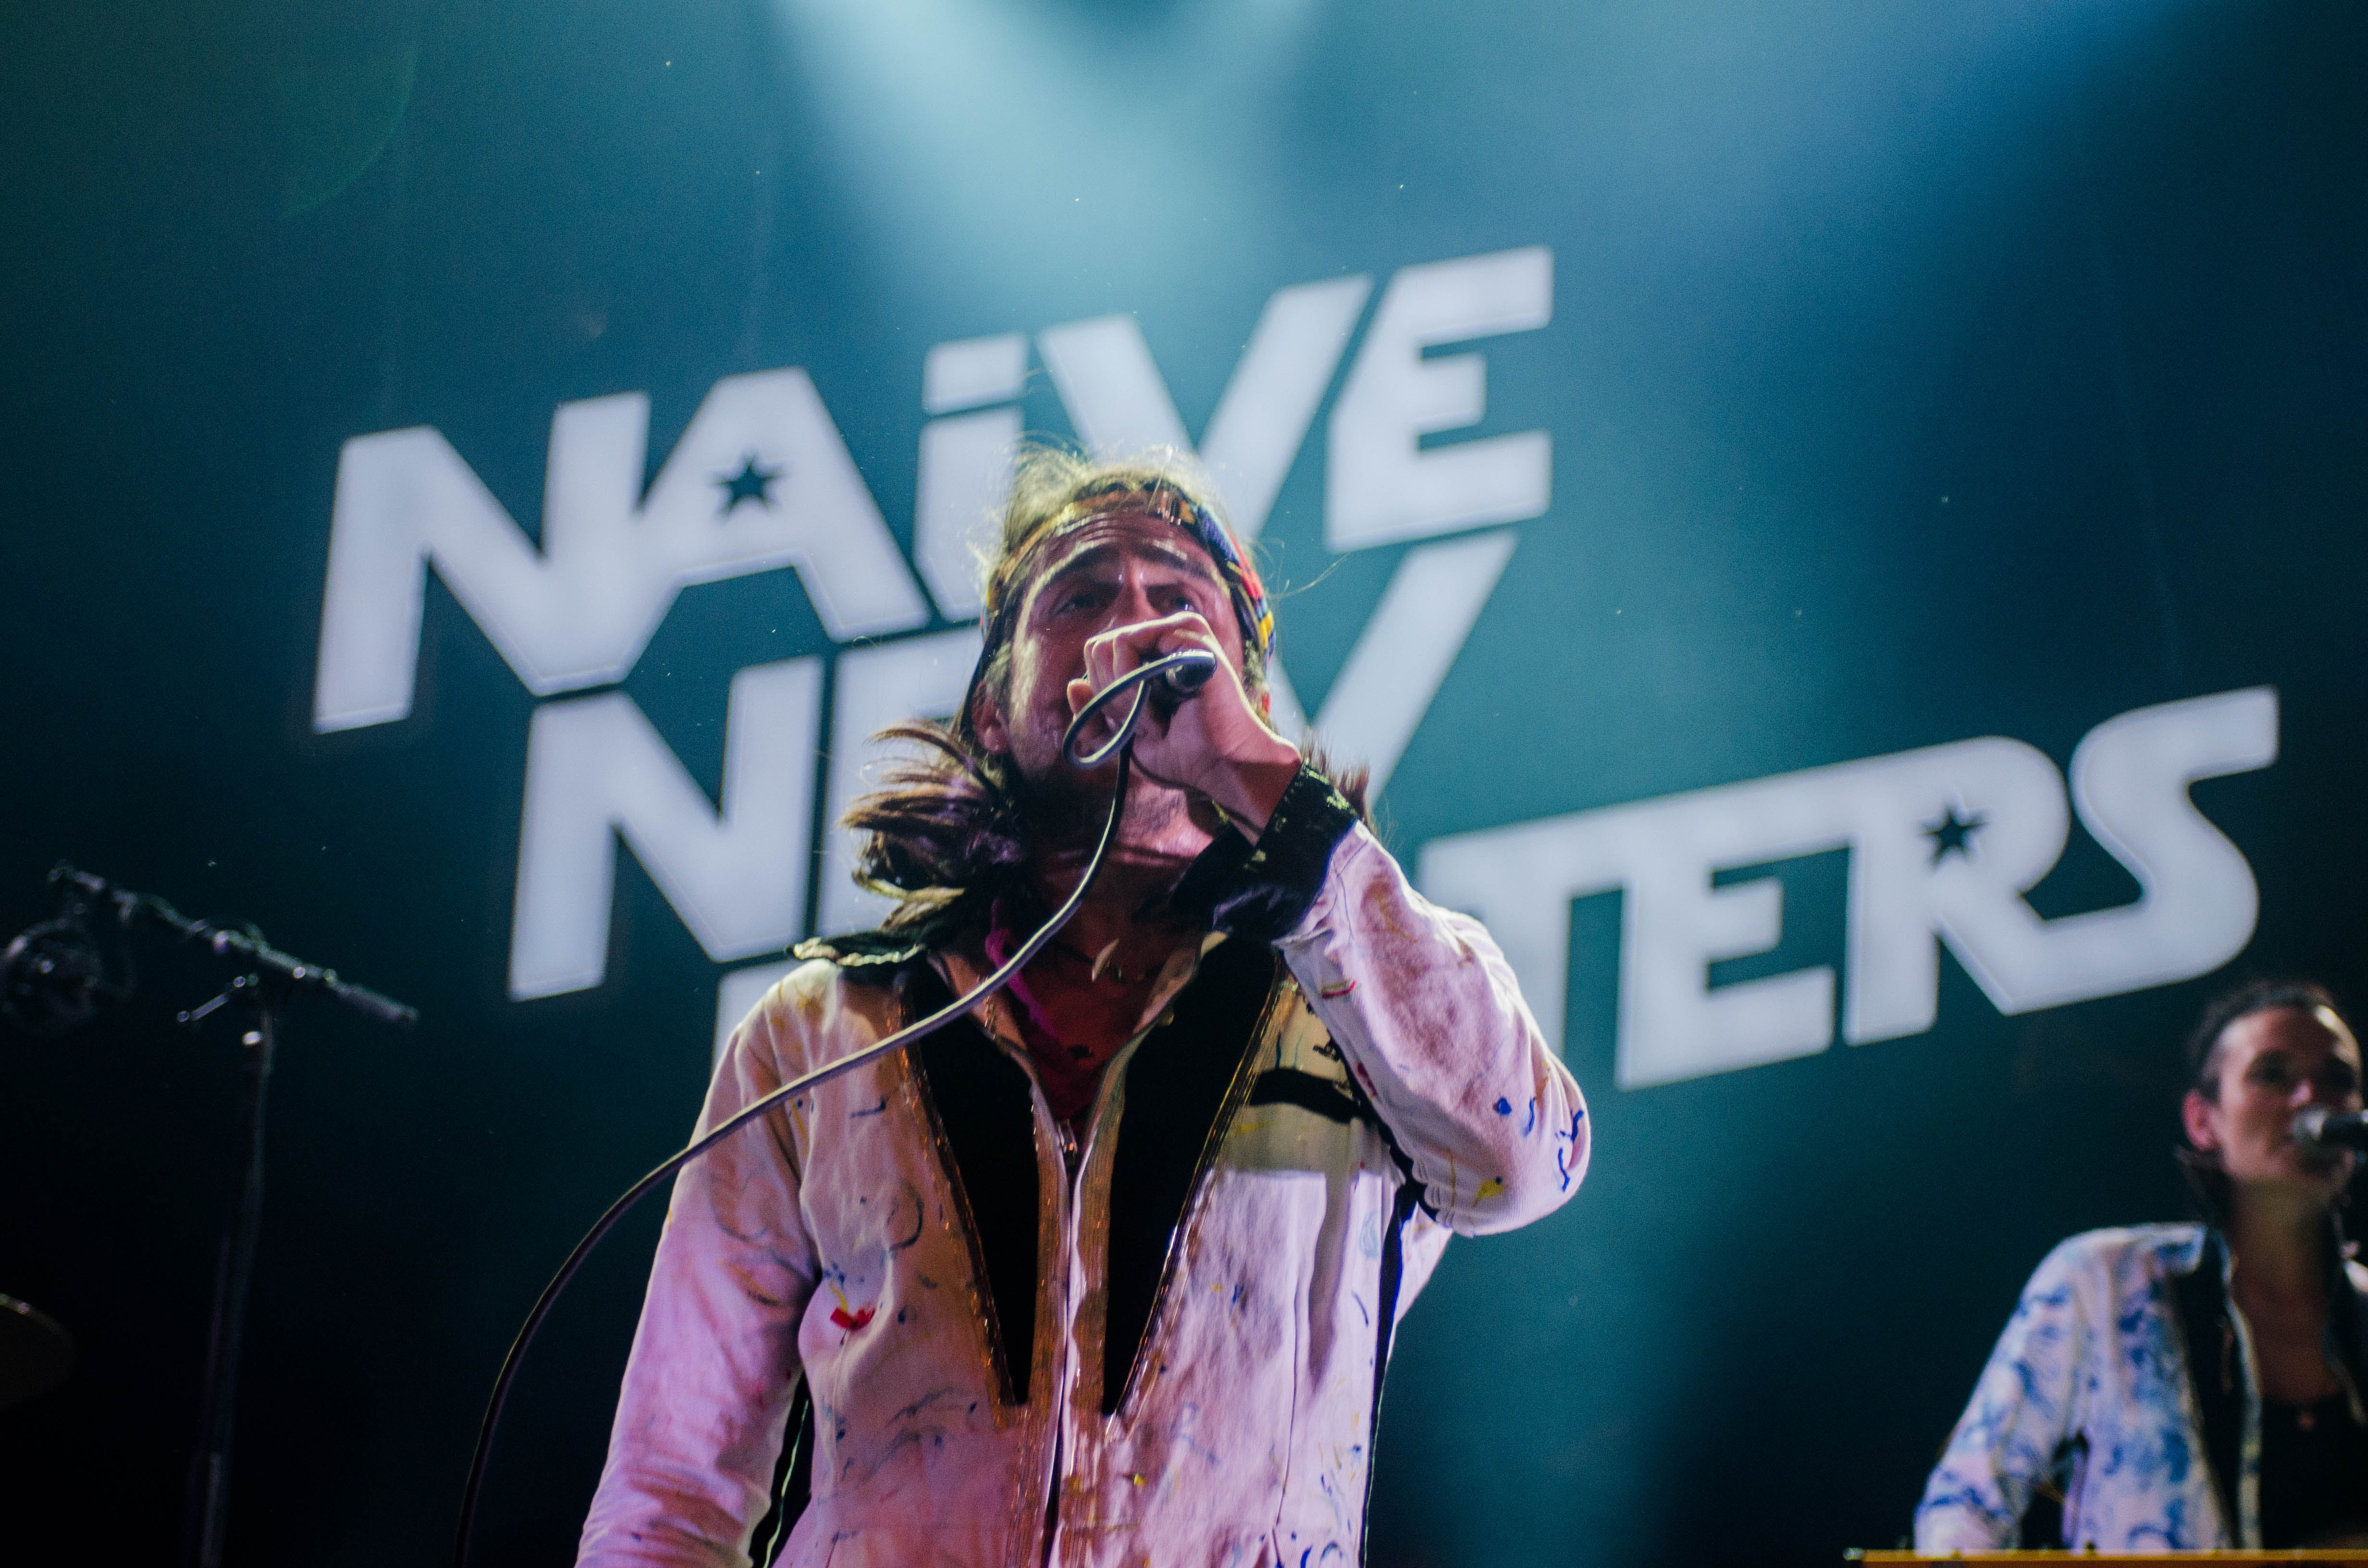 Free stock photo of Naive New Beaters - Les Ardentes 2016